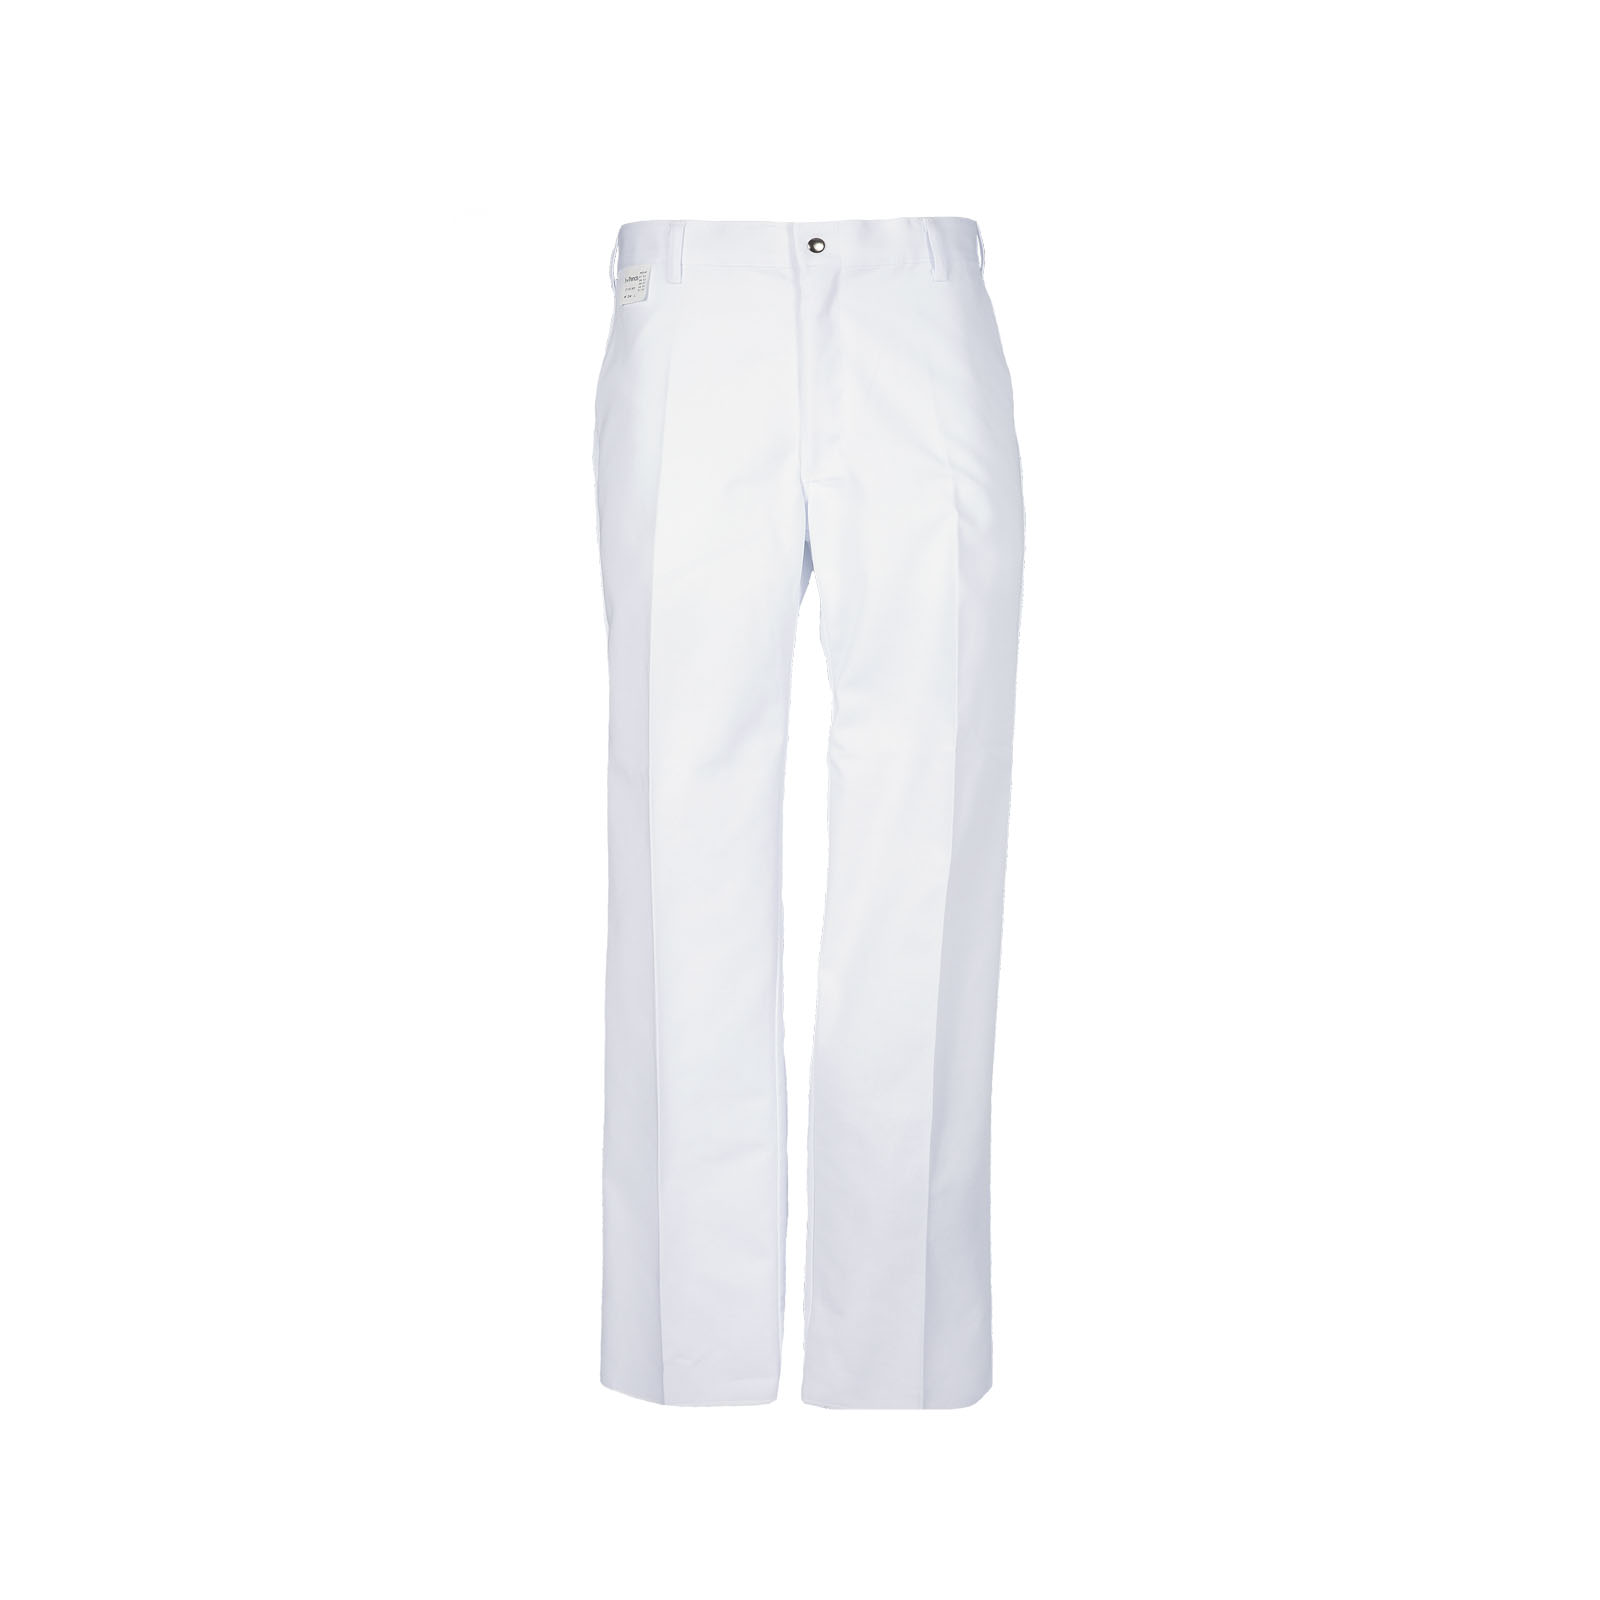 P100 White - Cook Pant, Zipper Fly, Patch Pockets, Blend